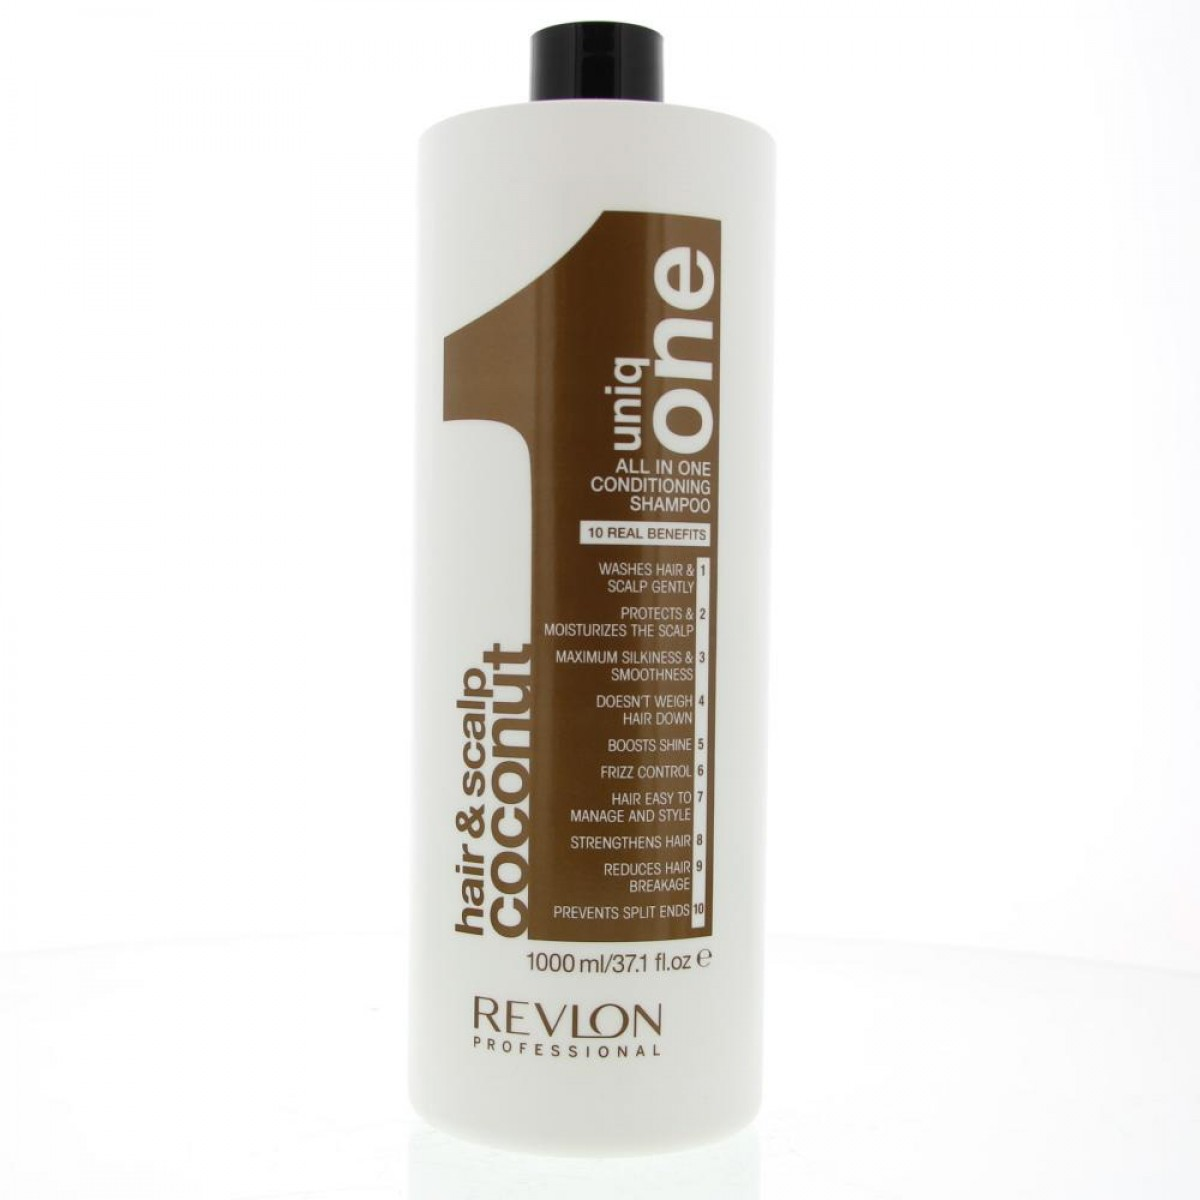 Revlon uniq one hair scalp coconut all in one conditioning shampoo 1000ml